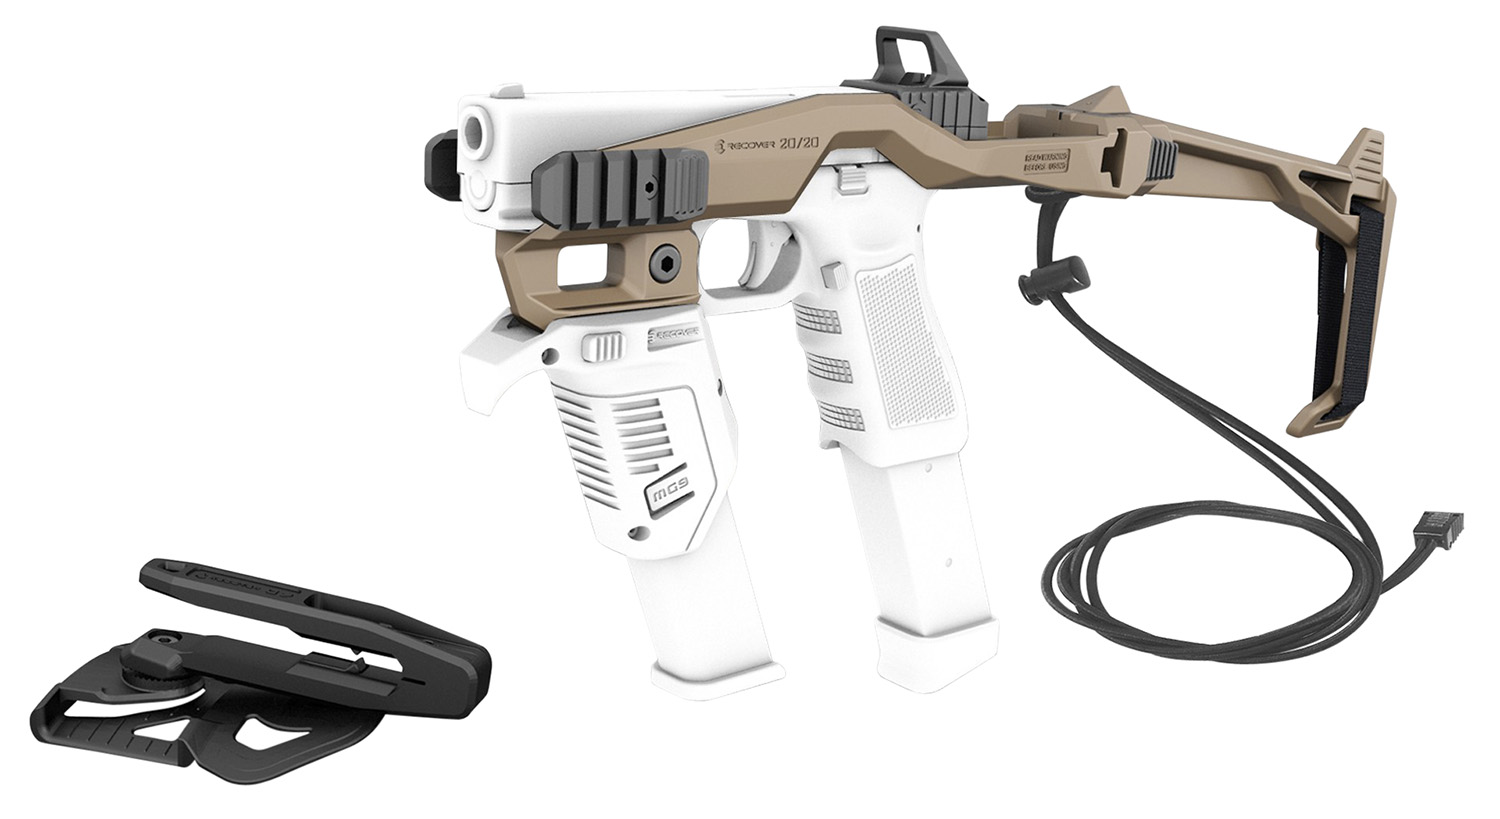 Recover Tactical 20/20HT Tactical 20/20 Stabilizer Kit  Synthetic Tan with G7 Holster w/Pistol Adapter